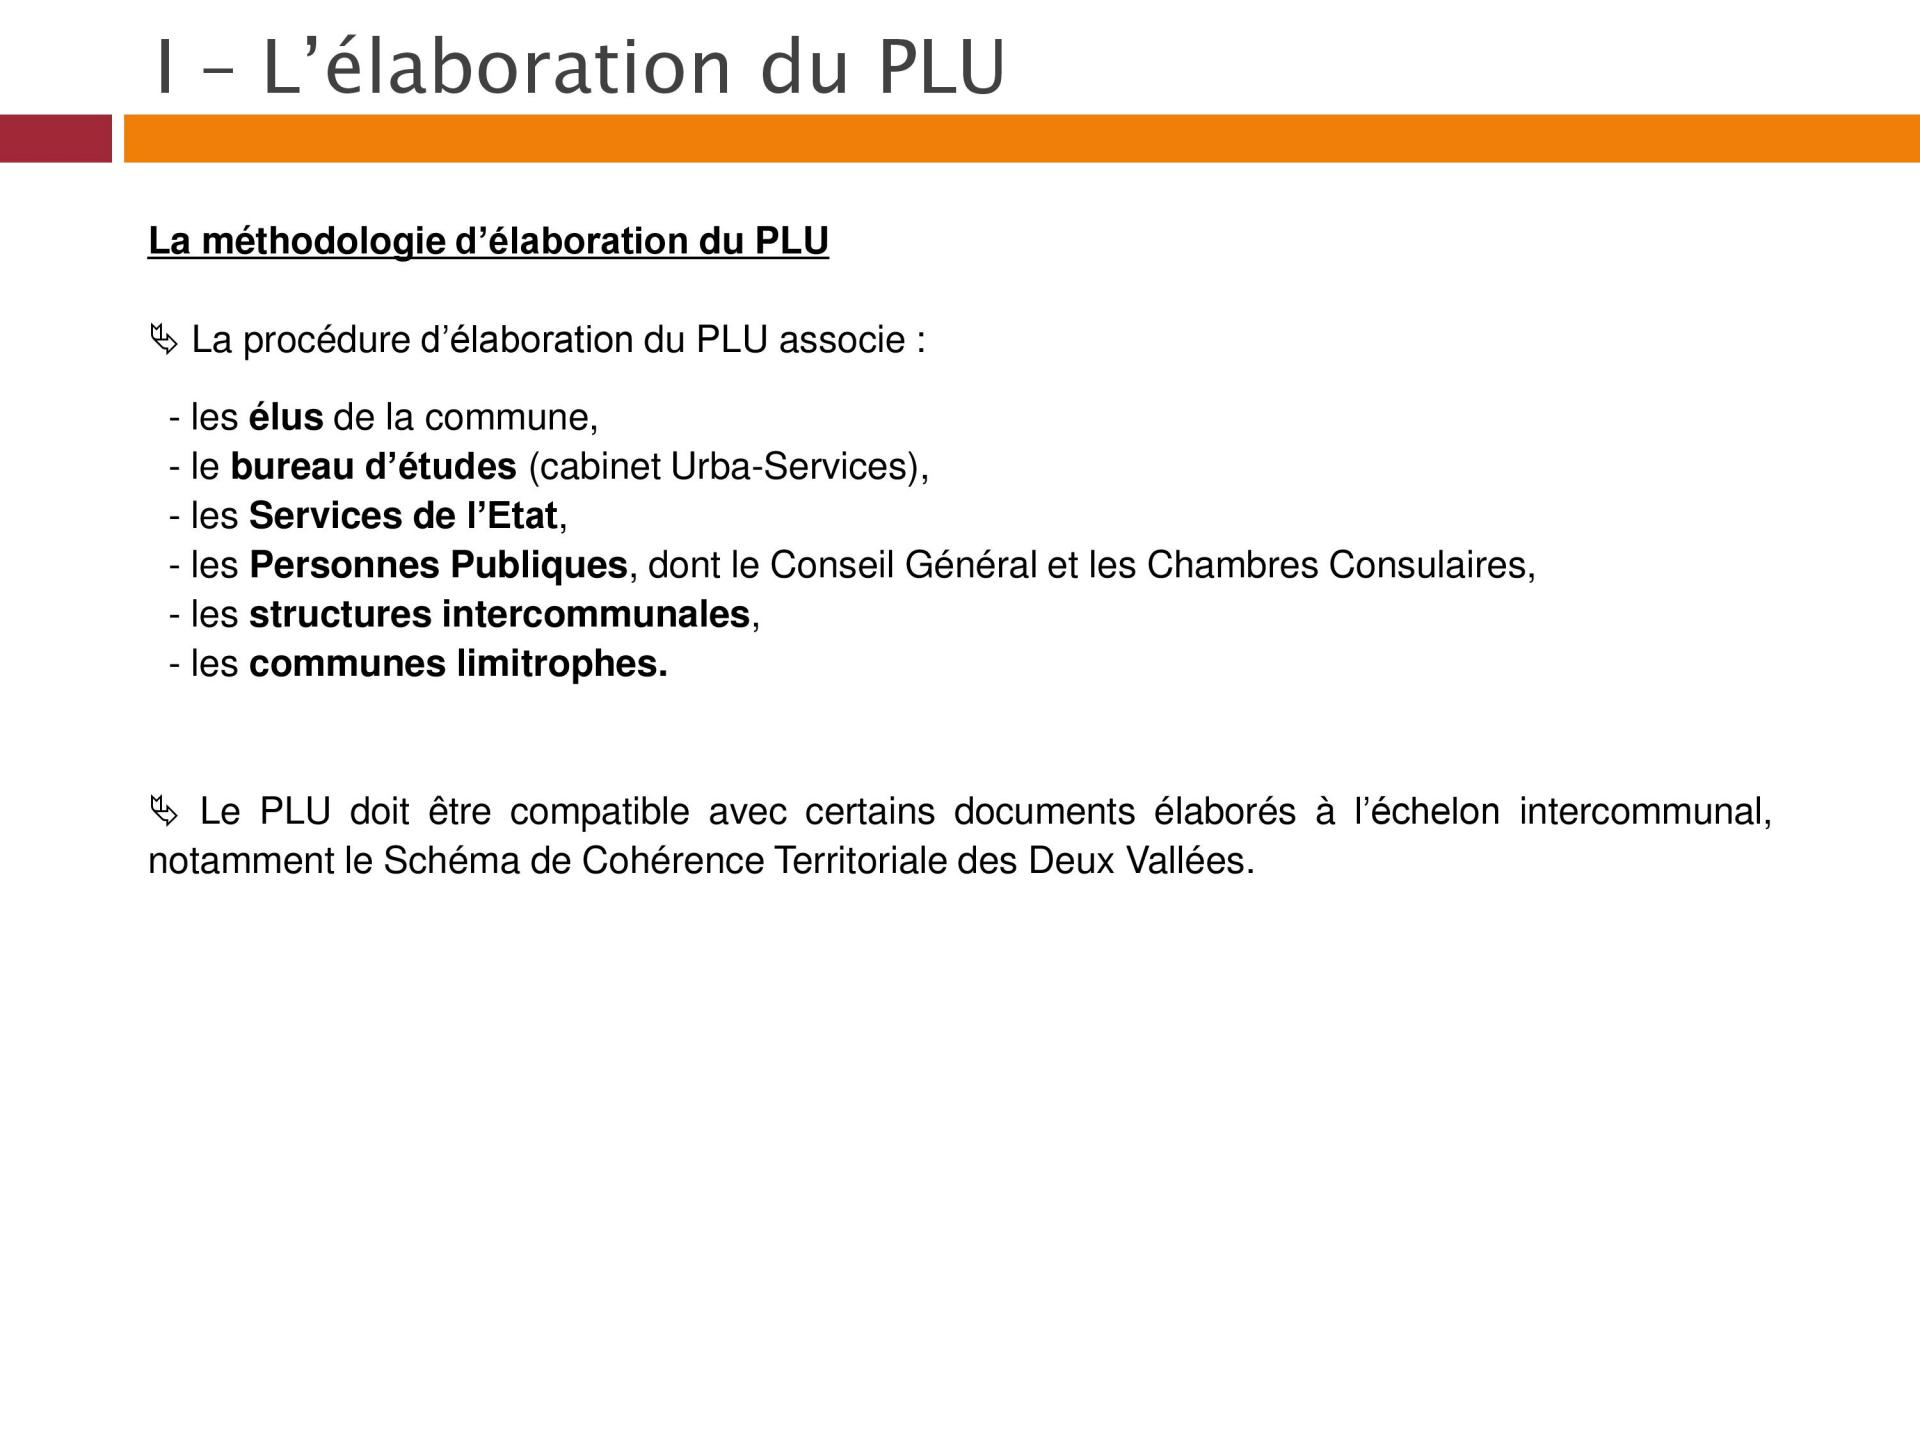 Reunion publique de concertation page 004